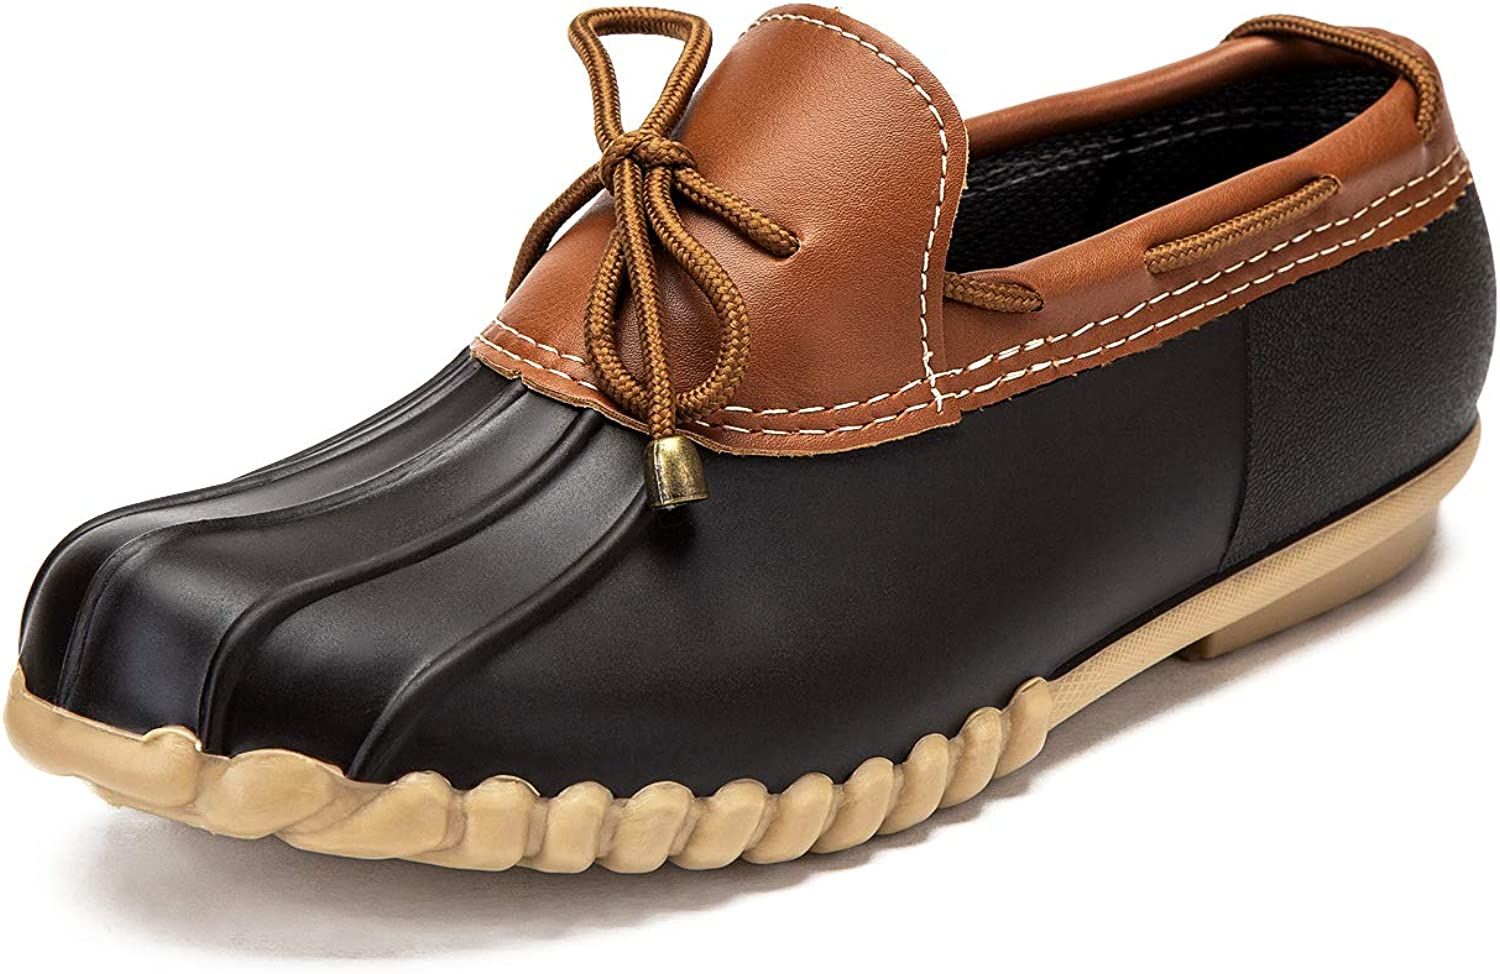 DKSUKO We OFFer at cheap prices Women's Waterpoof Loafer Shoes Flat Duck Max 84% OFF Slip On